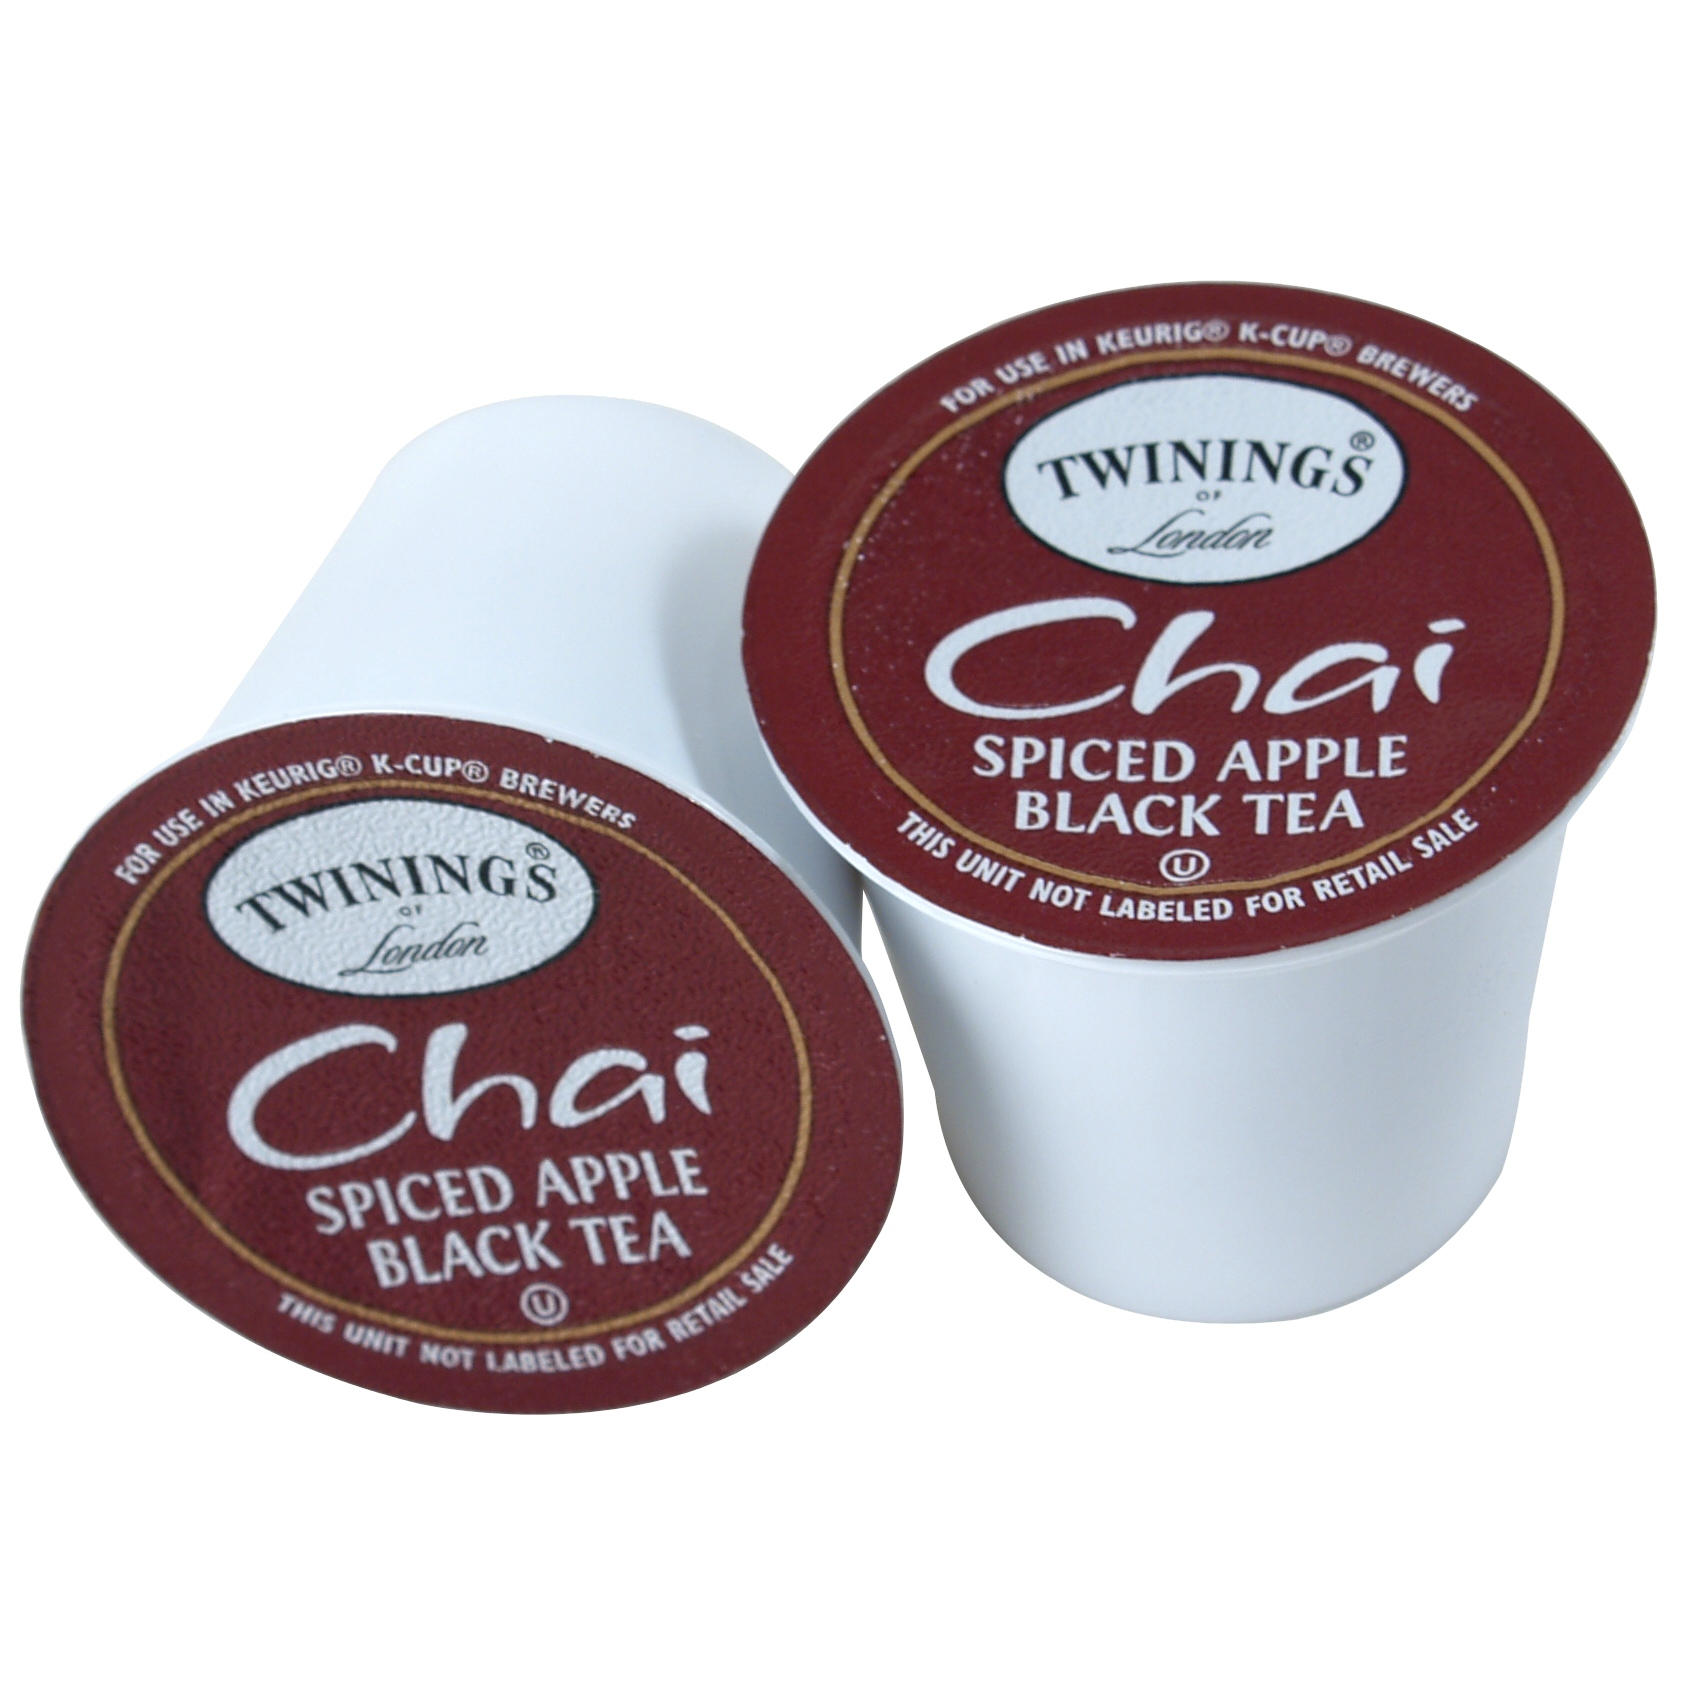 Twinings Spiced Apple Chai Tea Keurig K-Cups, 72 Count - Exceeded Best-By Date